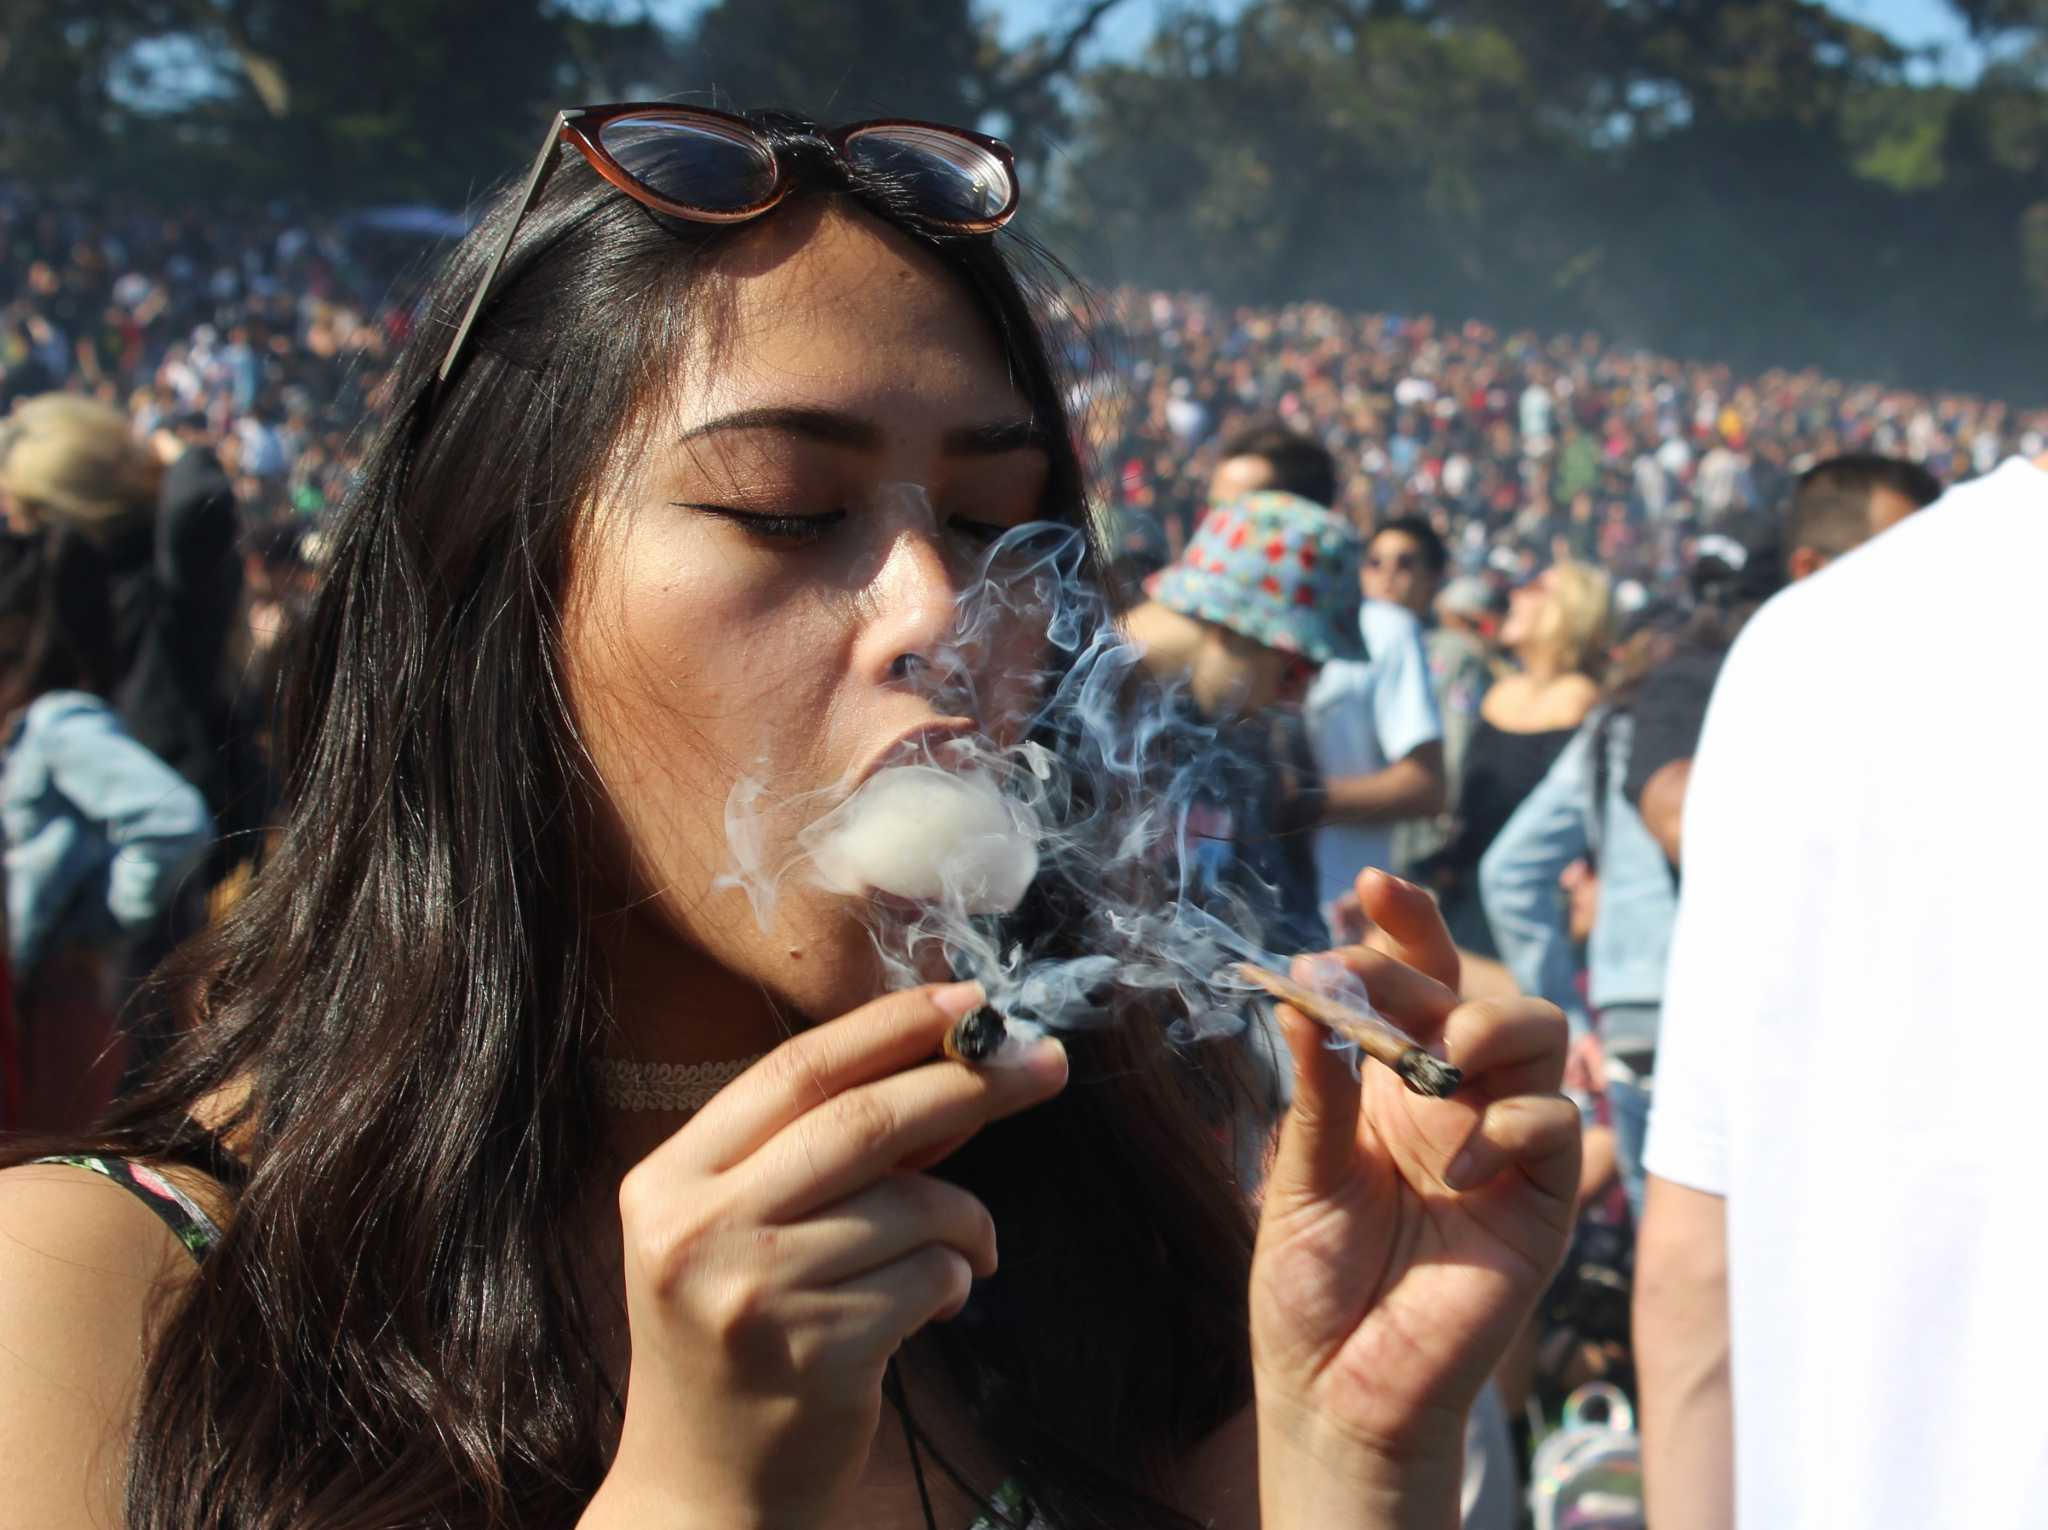 Le'alana Newman hits two blunts at exactly 4:20 p.m. at the city-permitted 420 celebration at Hippie Hill in San Francisco, Calif. on April 20, 2017 (Xpress/MJ Ongoy).